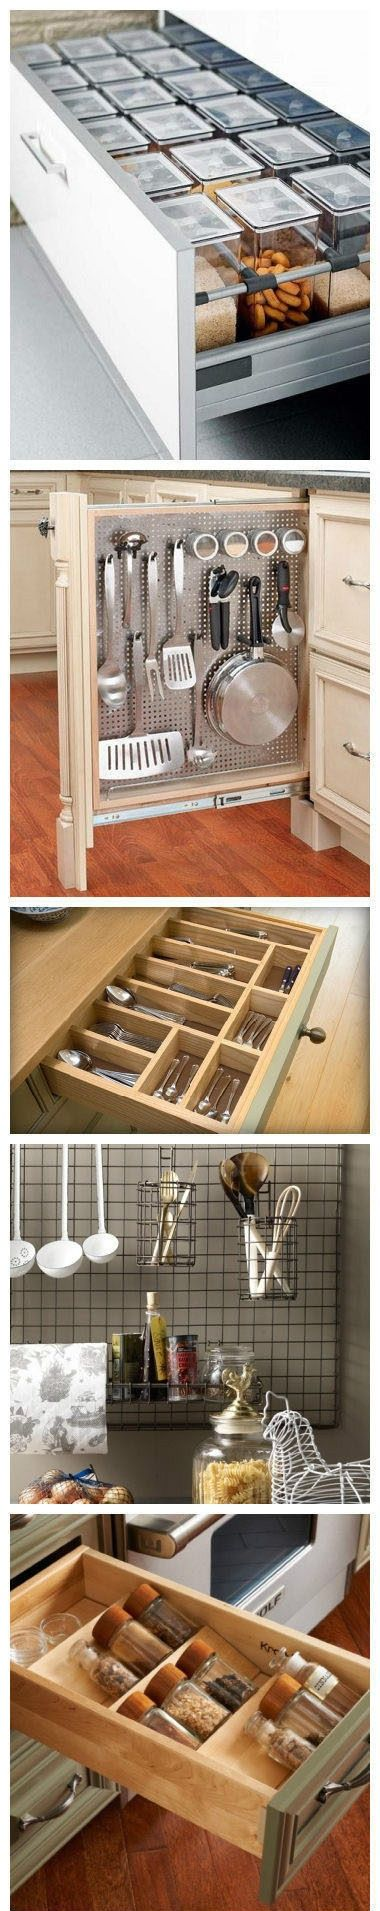 creative kitchen cabinet